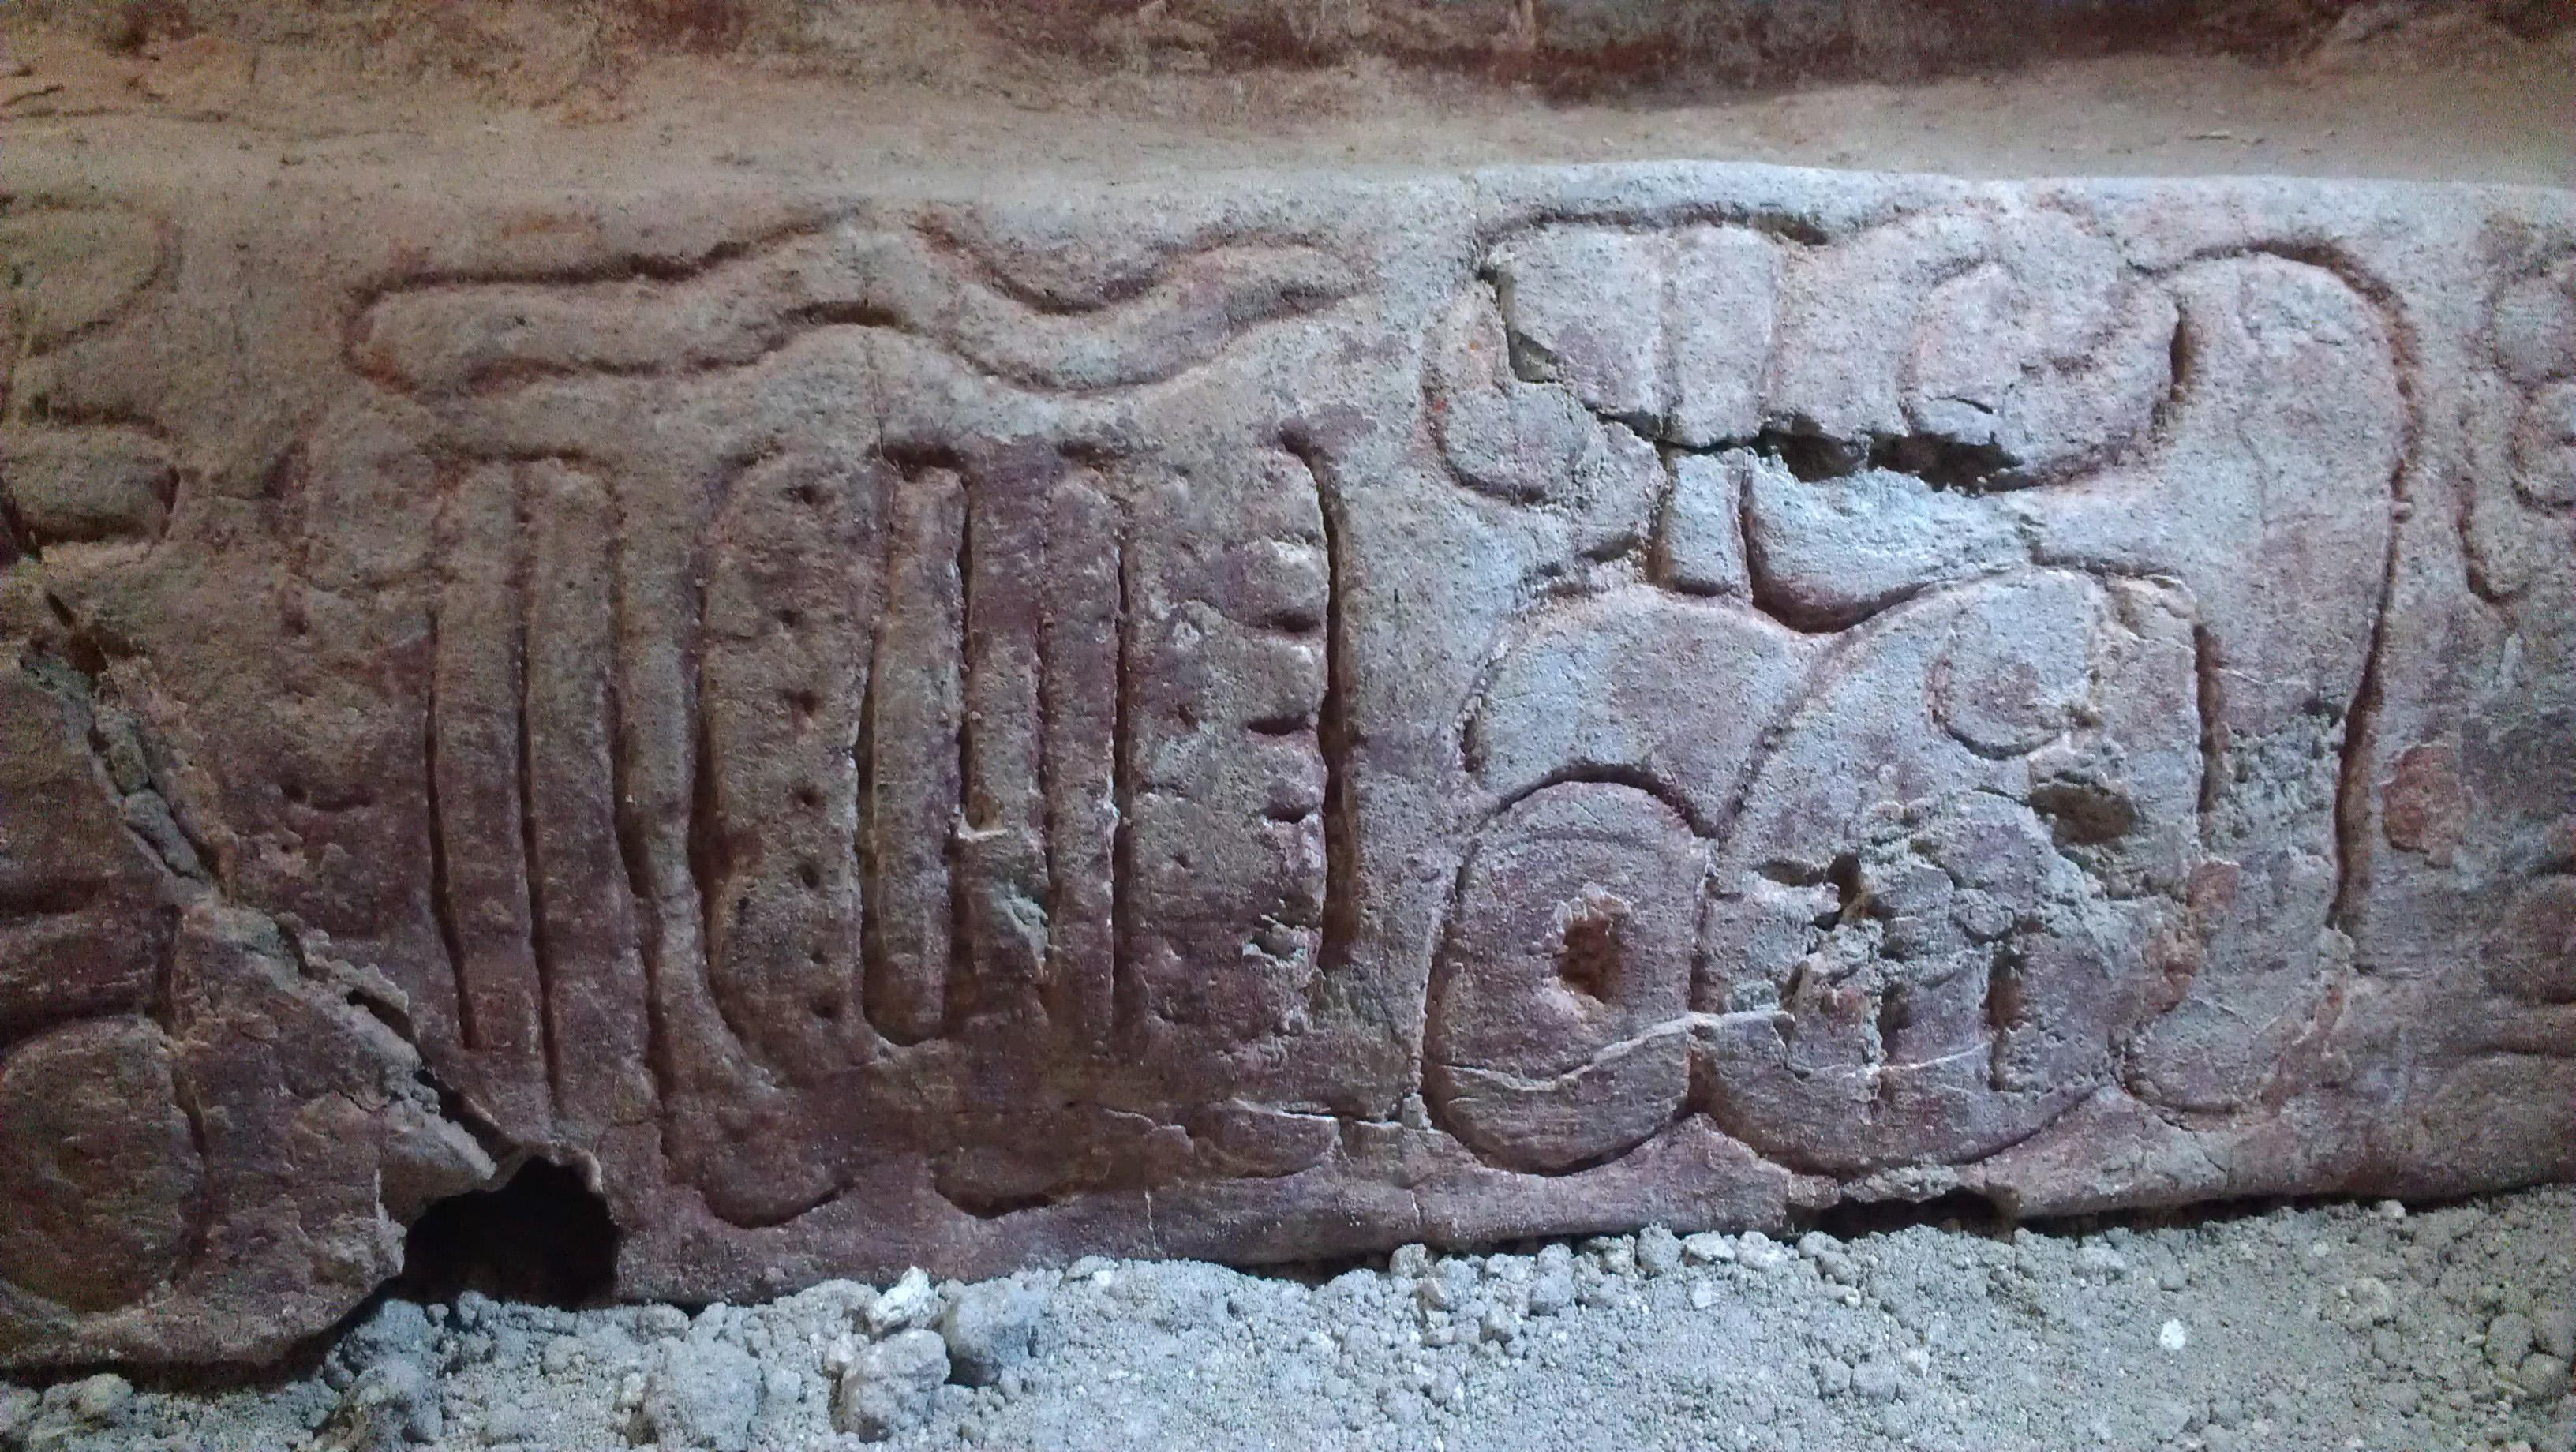 This June 2013 photo released by Proyecto Arqueologico Holmul shows a detail of a high-relief stucco sculpture recently discovered in the Mayan city of Holmul in the northern province of Peten, Guatemala. The frieze was found at this Mayan pyramid that dates to A.D. 600. A statement issued Wednesday, Aug. 7, 2013 says the frieze was found by archaeologist Francisco Estrada-Belli, a professor at Tulane University's Anthropology Department and his team in the northern Province of Peten, home to other big classic ruin sites.(AP Photo/Proyecto Arqueologico Holmul, Francisco Estrada-Belli)